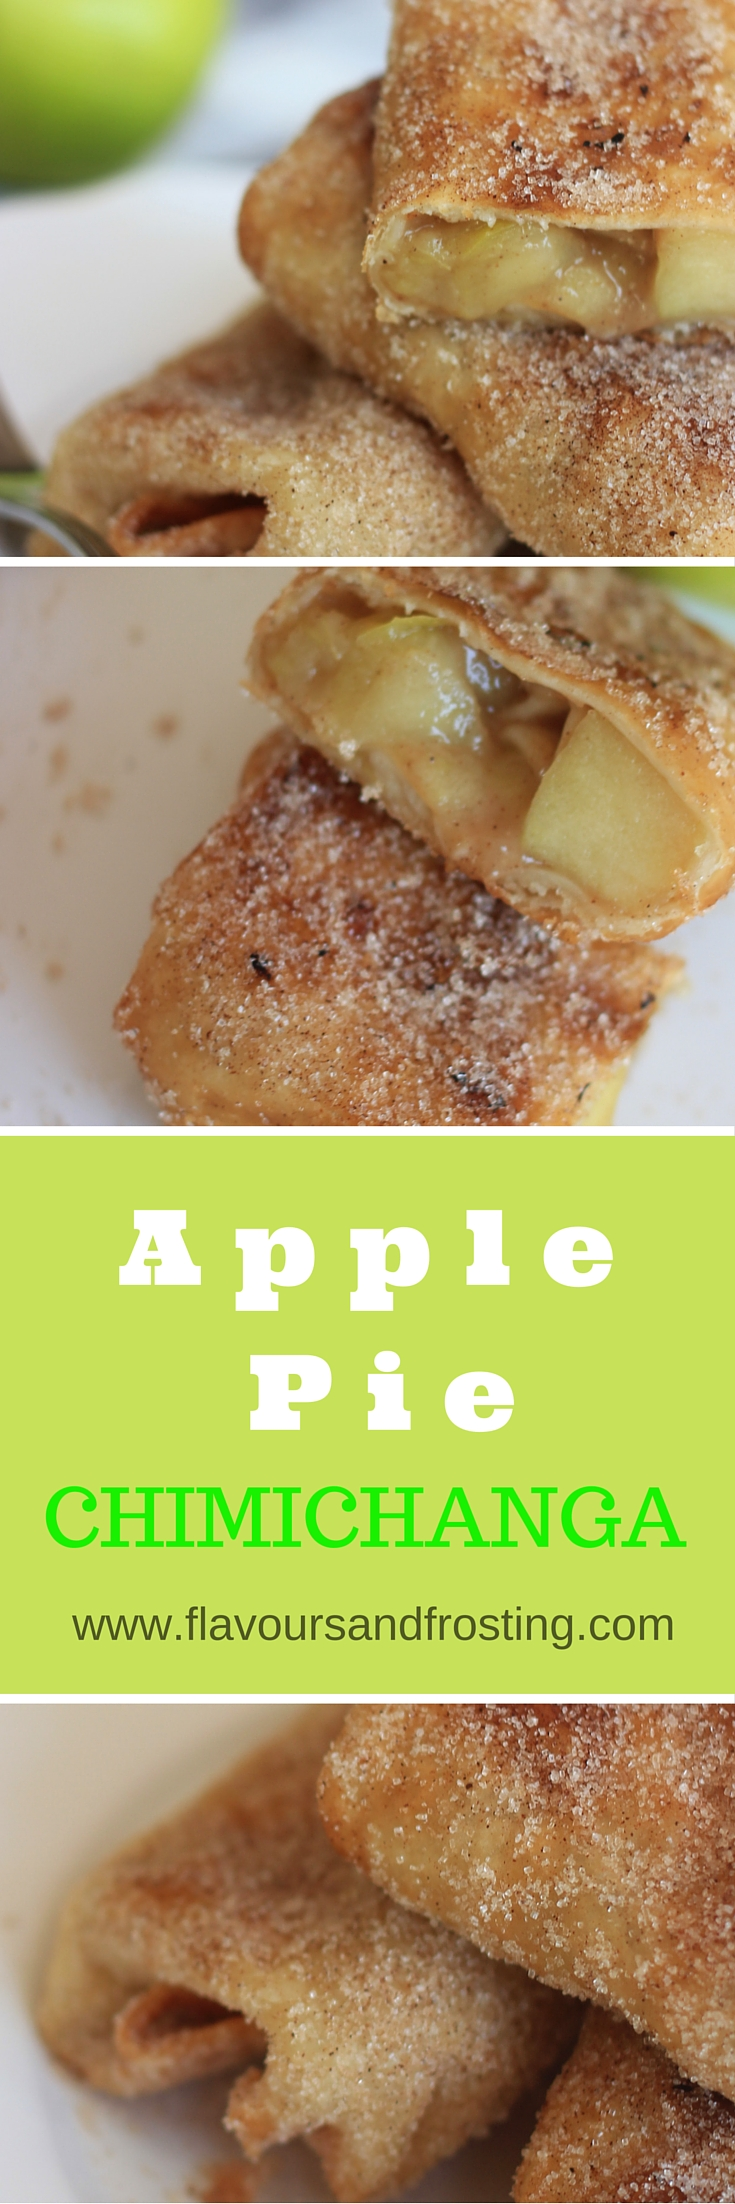 Delicious Apple Pie Chimichanga Recipe made with Mexican flour tortillas filled with apple pie filling, deep fried and rolled into a cinnamon sugar mix.